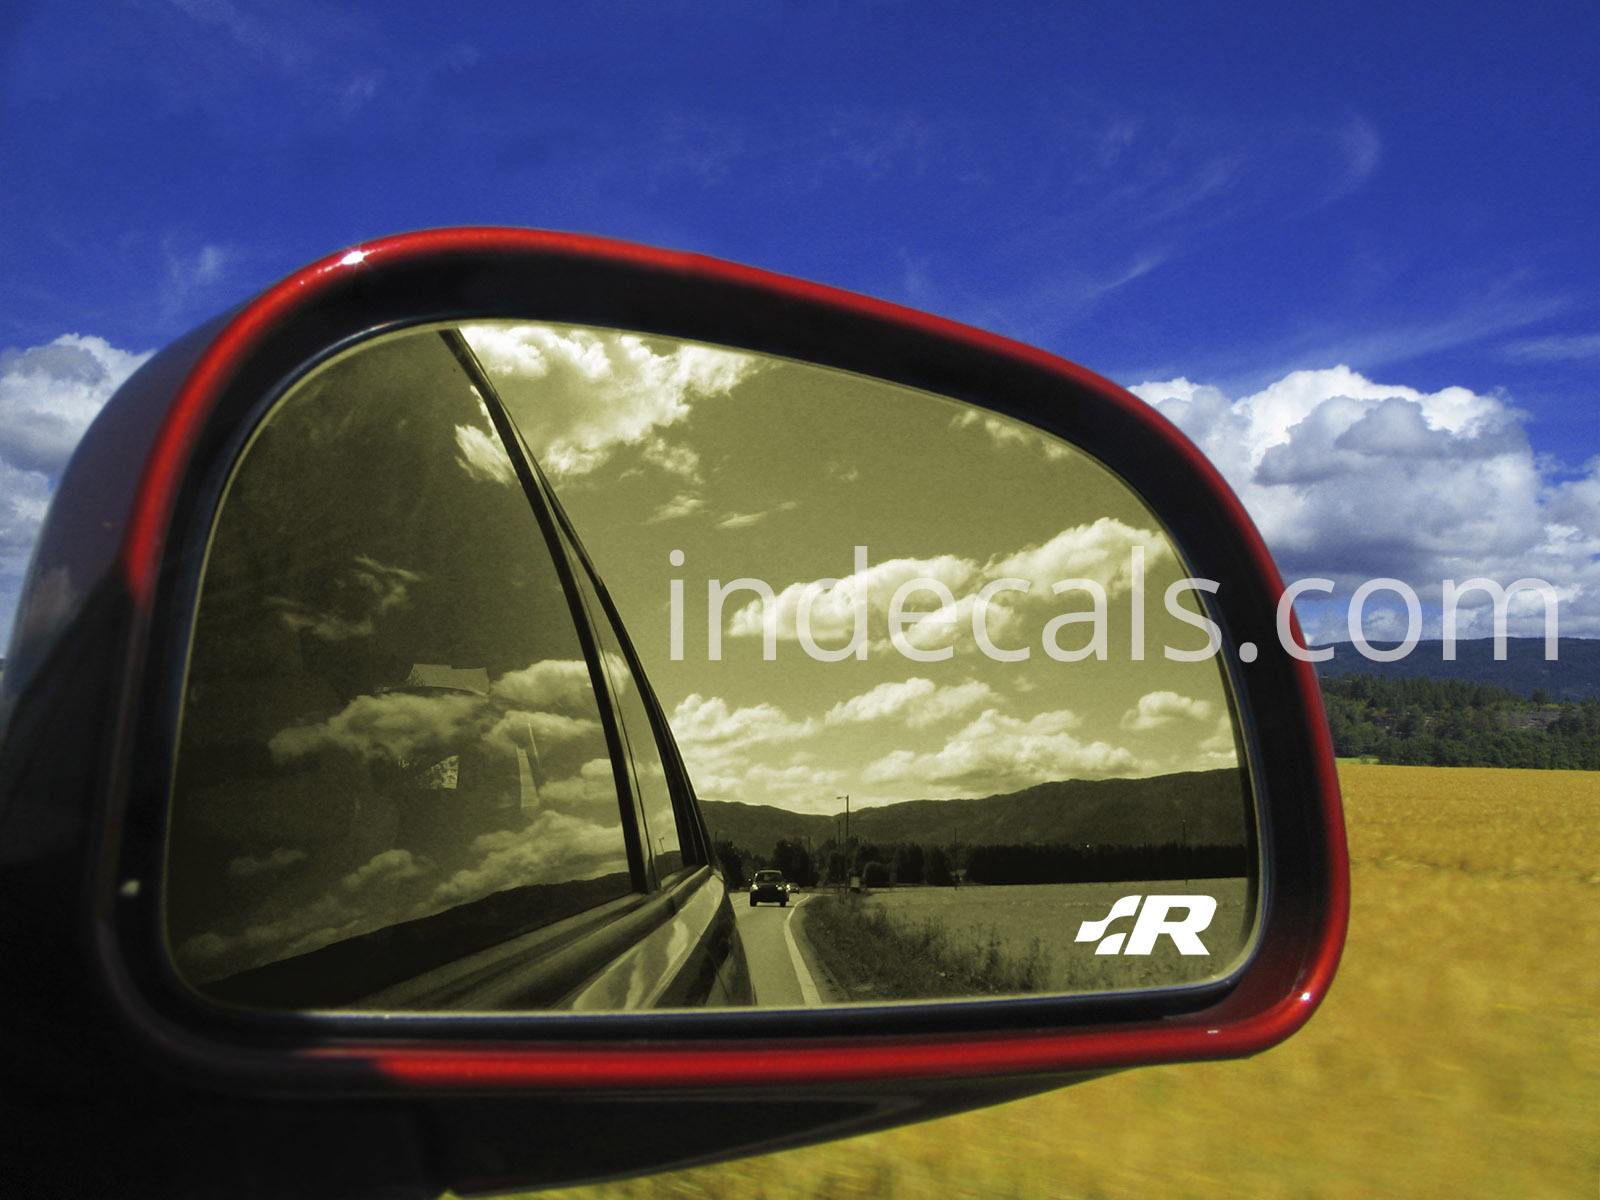 2 x Volkswagen Racing stickers for Mirror